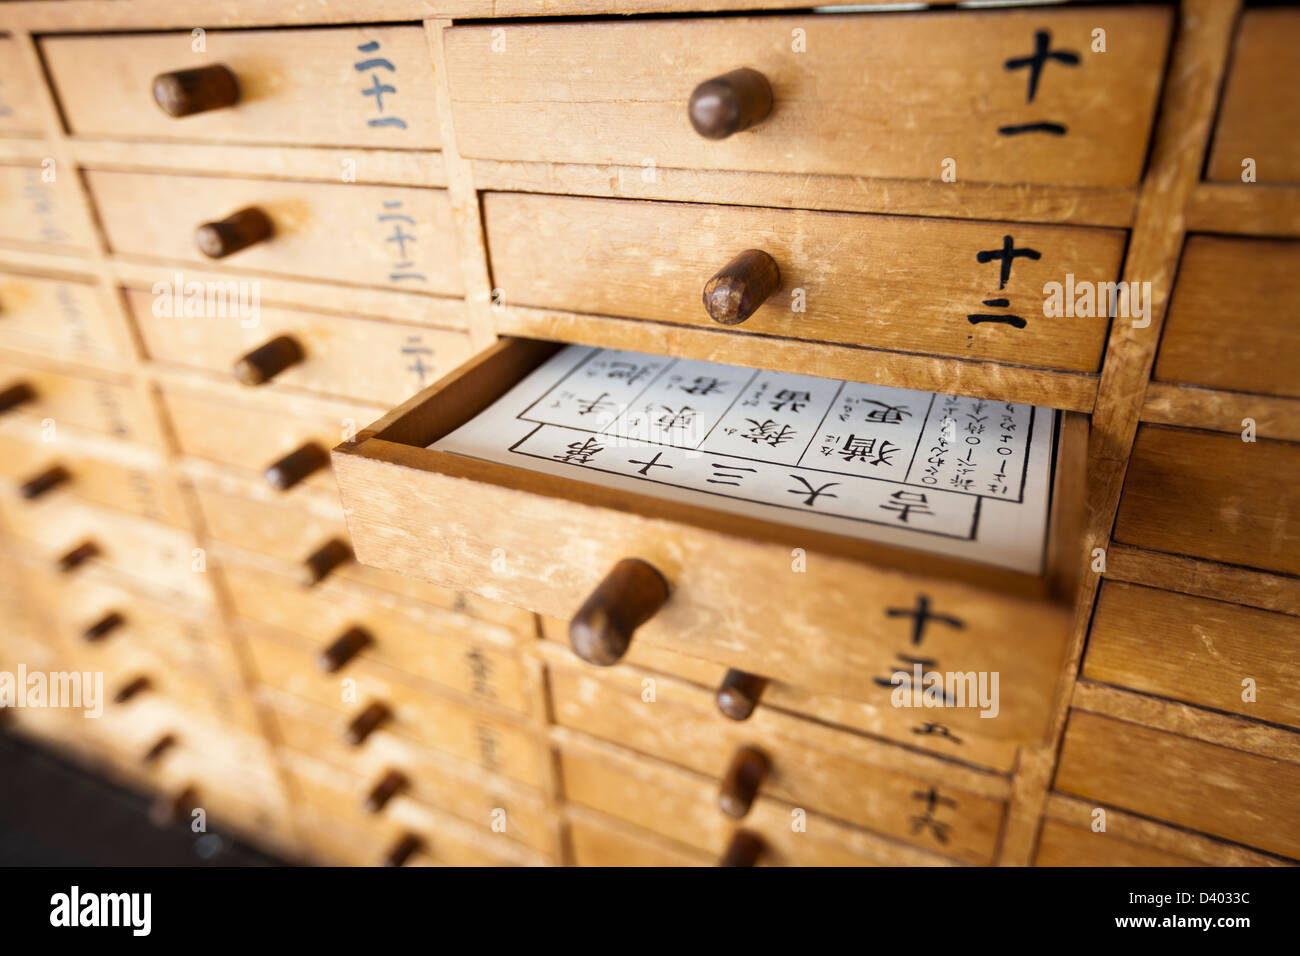 Omikuji drawers at a temple in Japan. - Stock Image